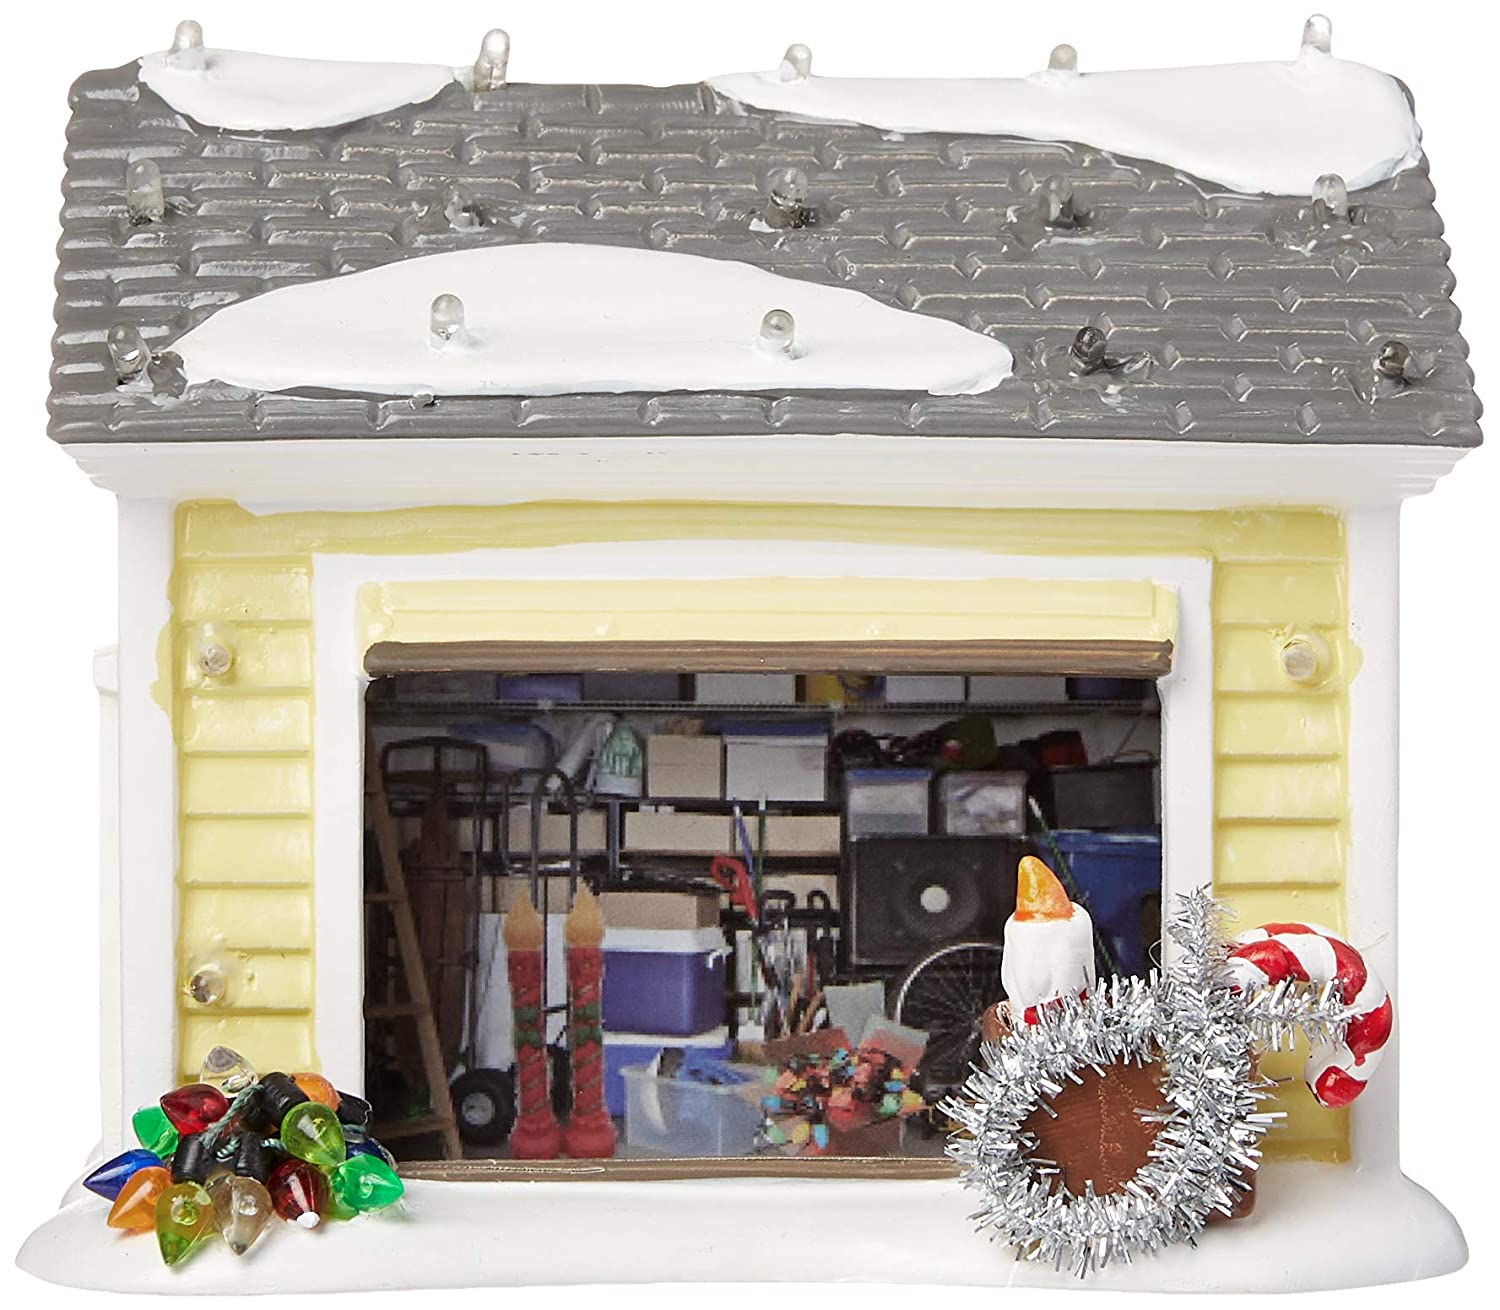 Department 56 4056686 Snow Village Christmas Vacation die Griswold Holiday Garage Lit Building, Multicolor